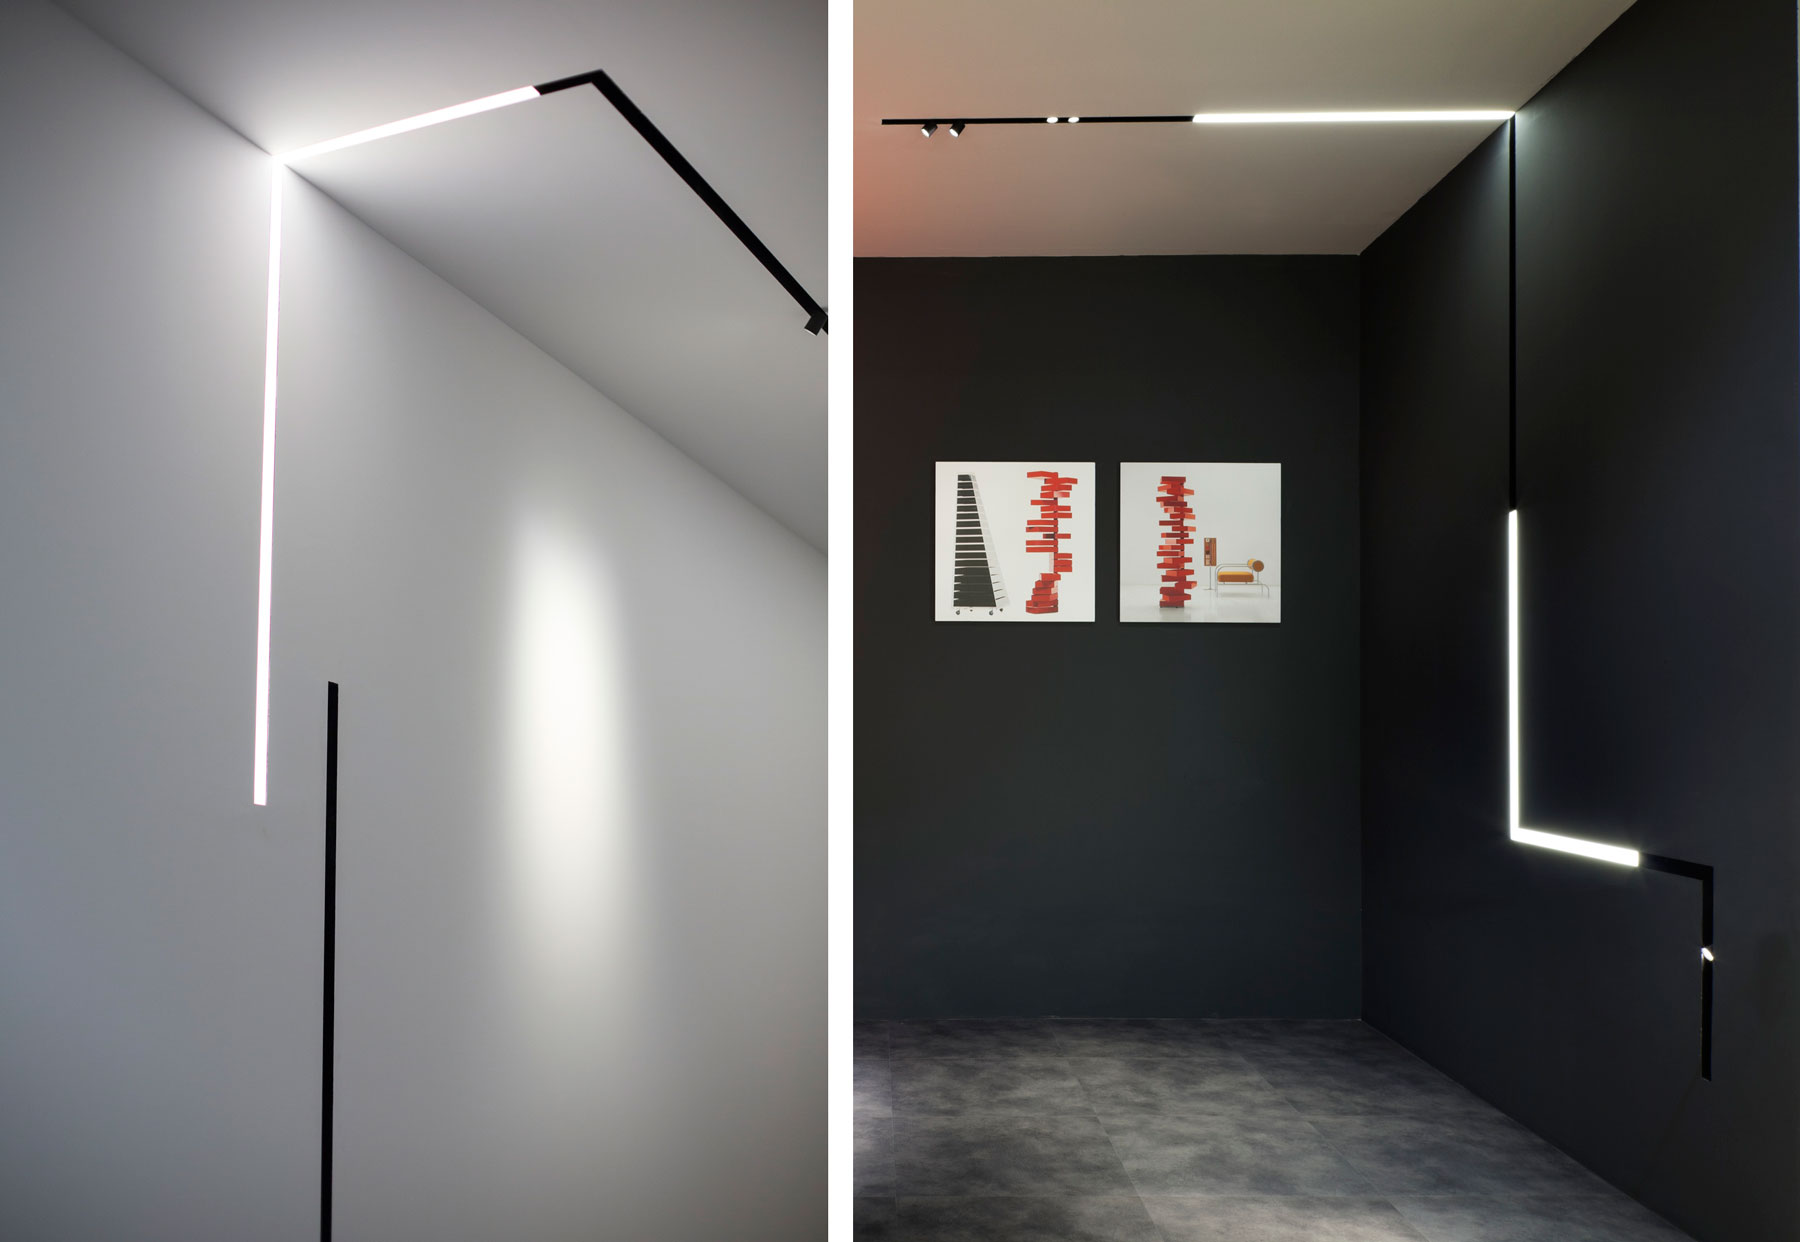 Architectural lighting style joins performance in the running architectural lighting style joins performance in the running magnet aloadofball Image collections